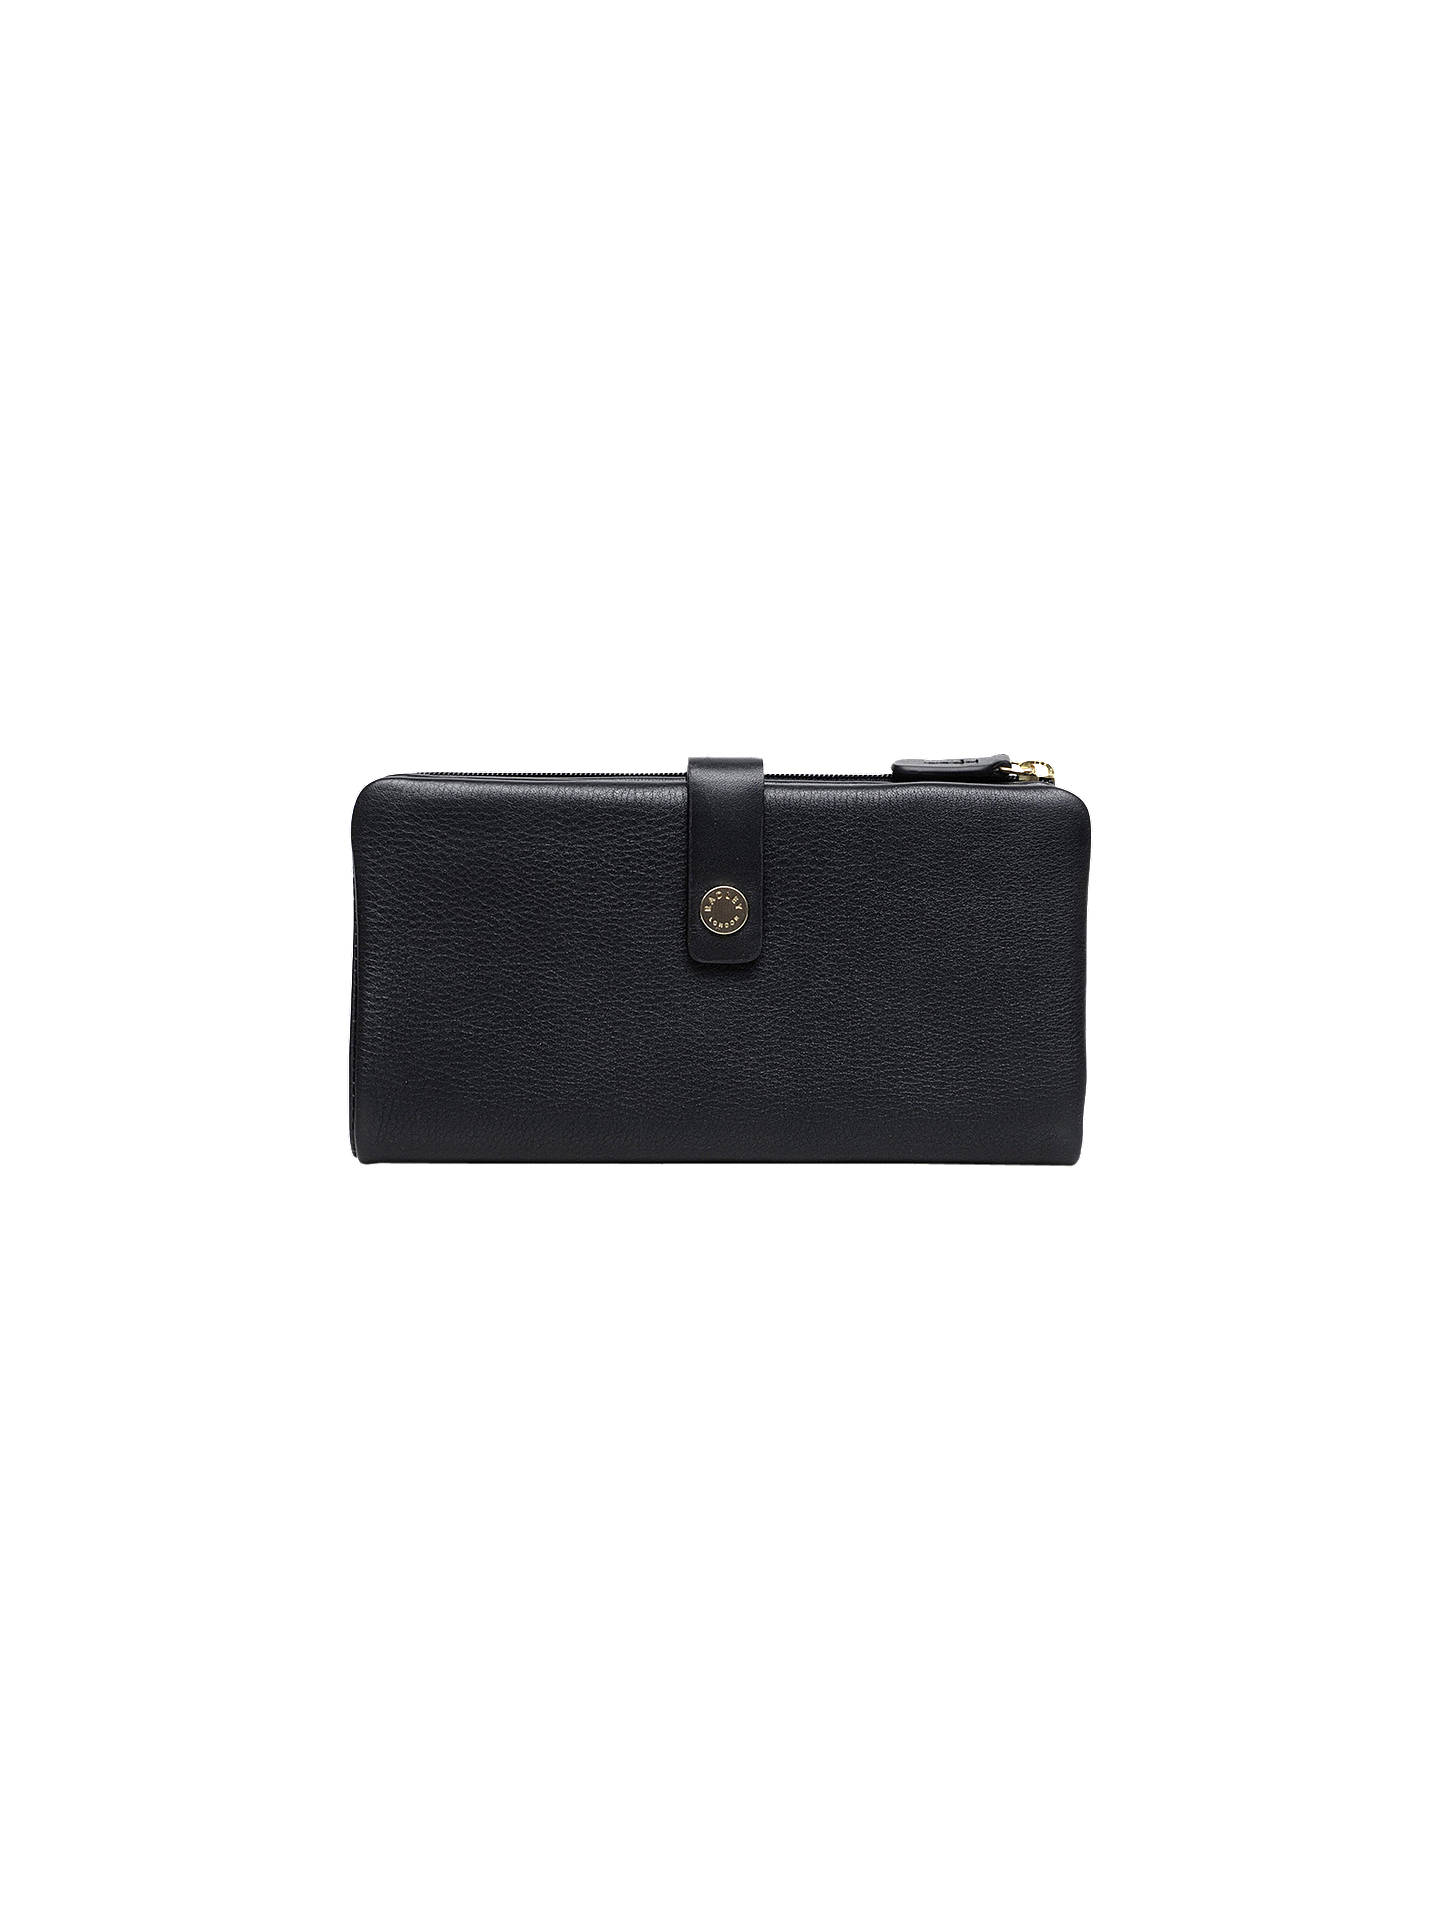 BuyRadley Larks Wood Leather Large Matinee Purse, Black Online at johnlewis.com